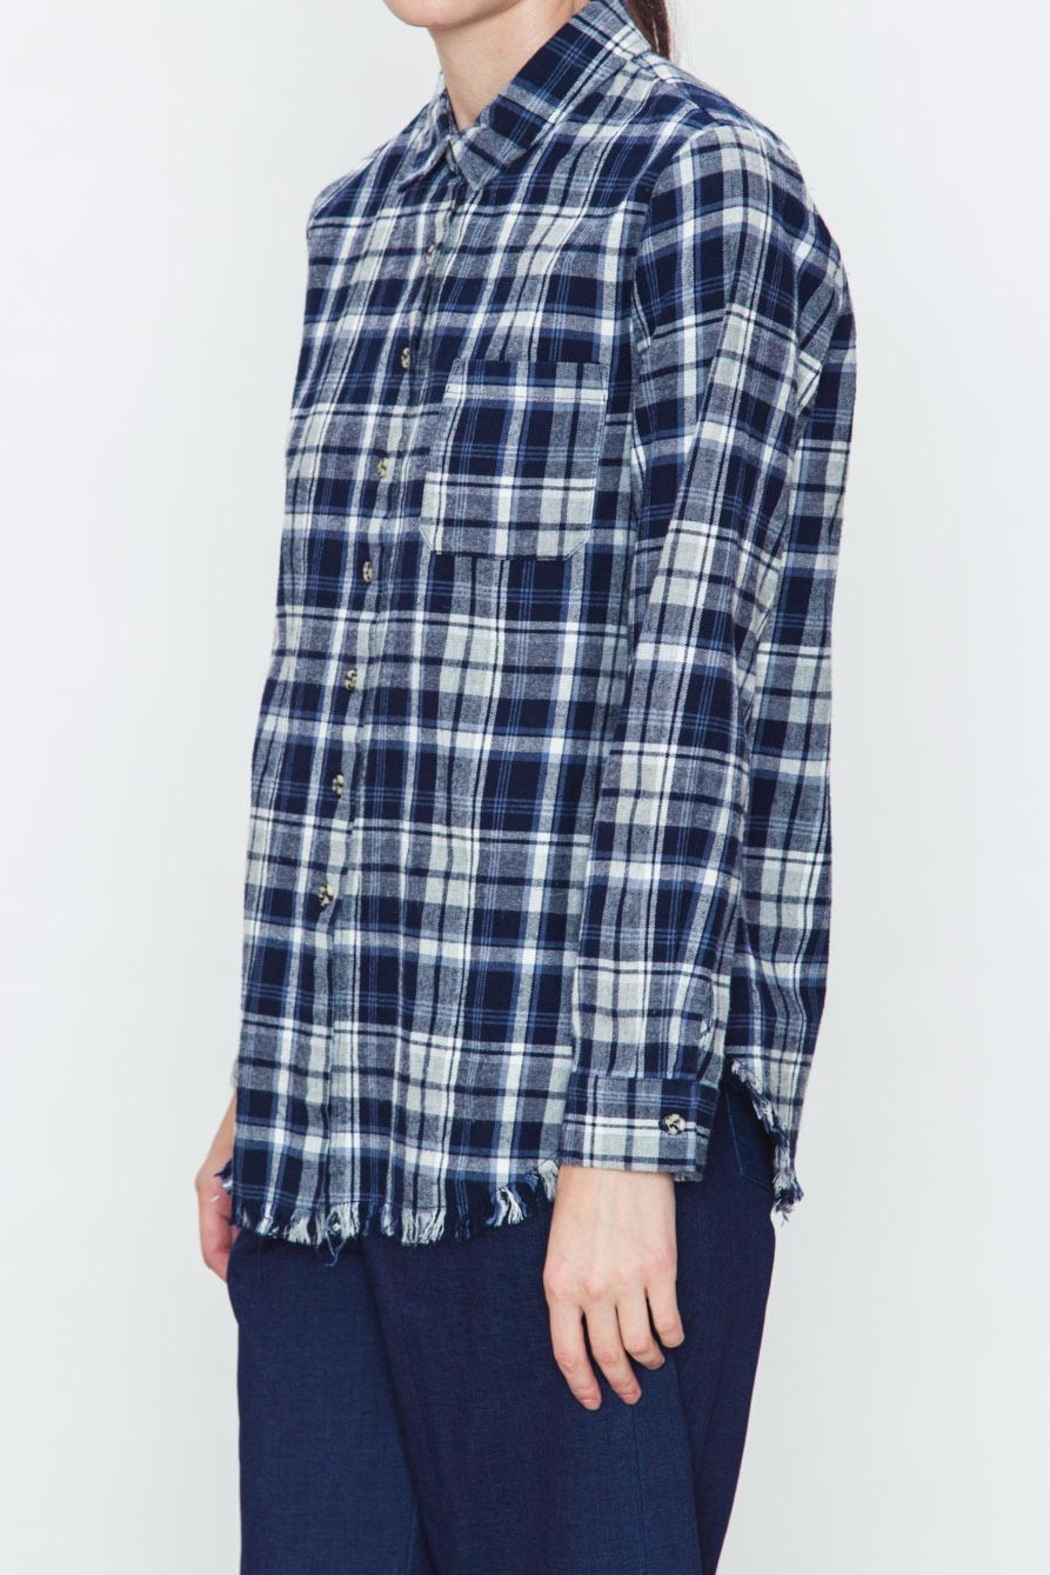 Movint Checkered Blue Plaid Shirt - Front Full Image